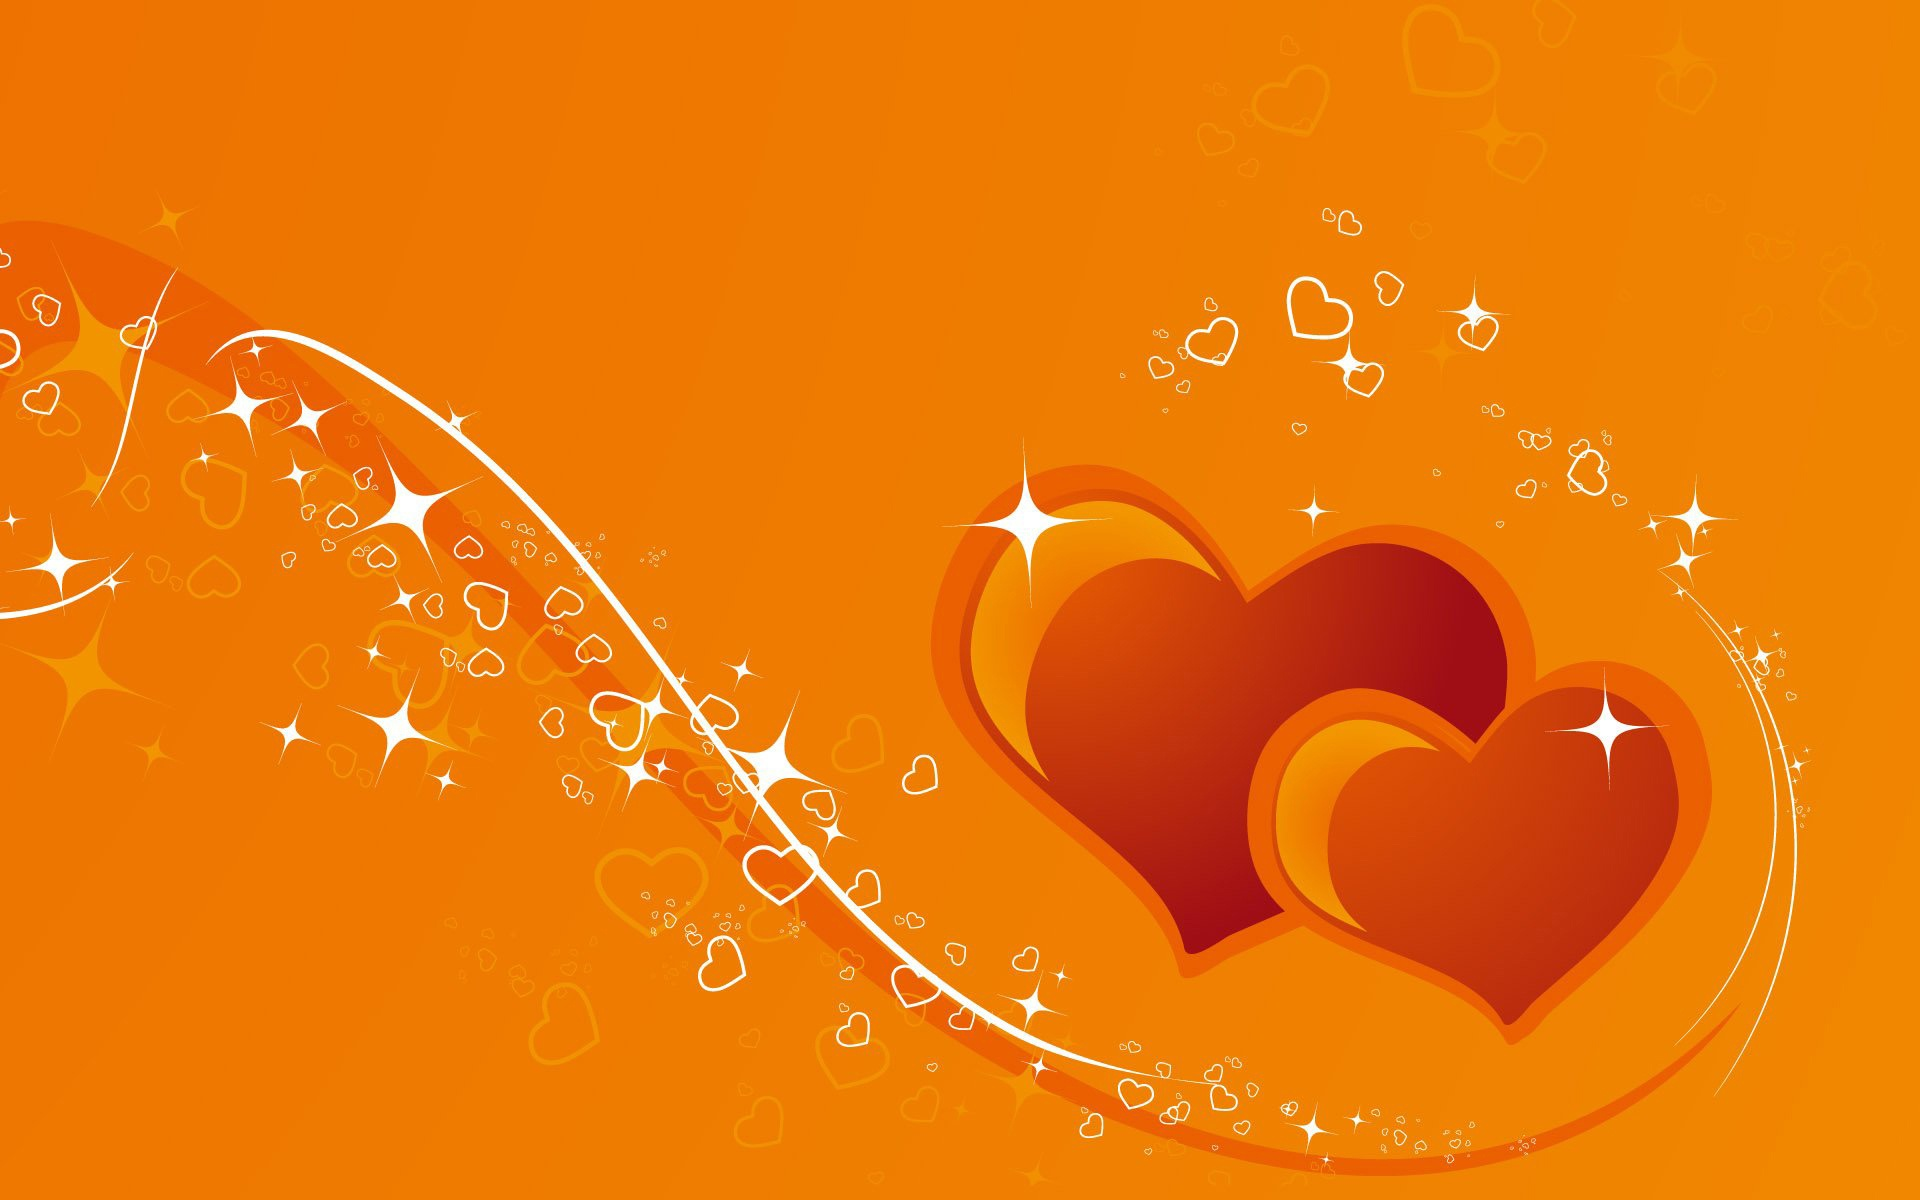 Wallpaper download in love - Love Hearts